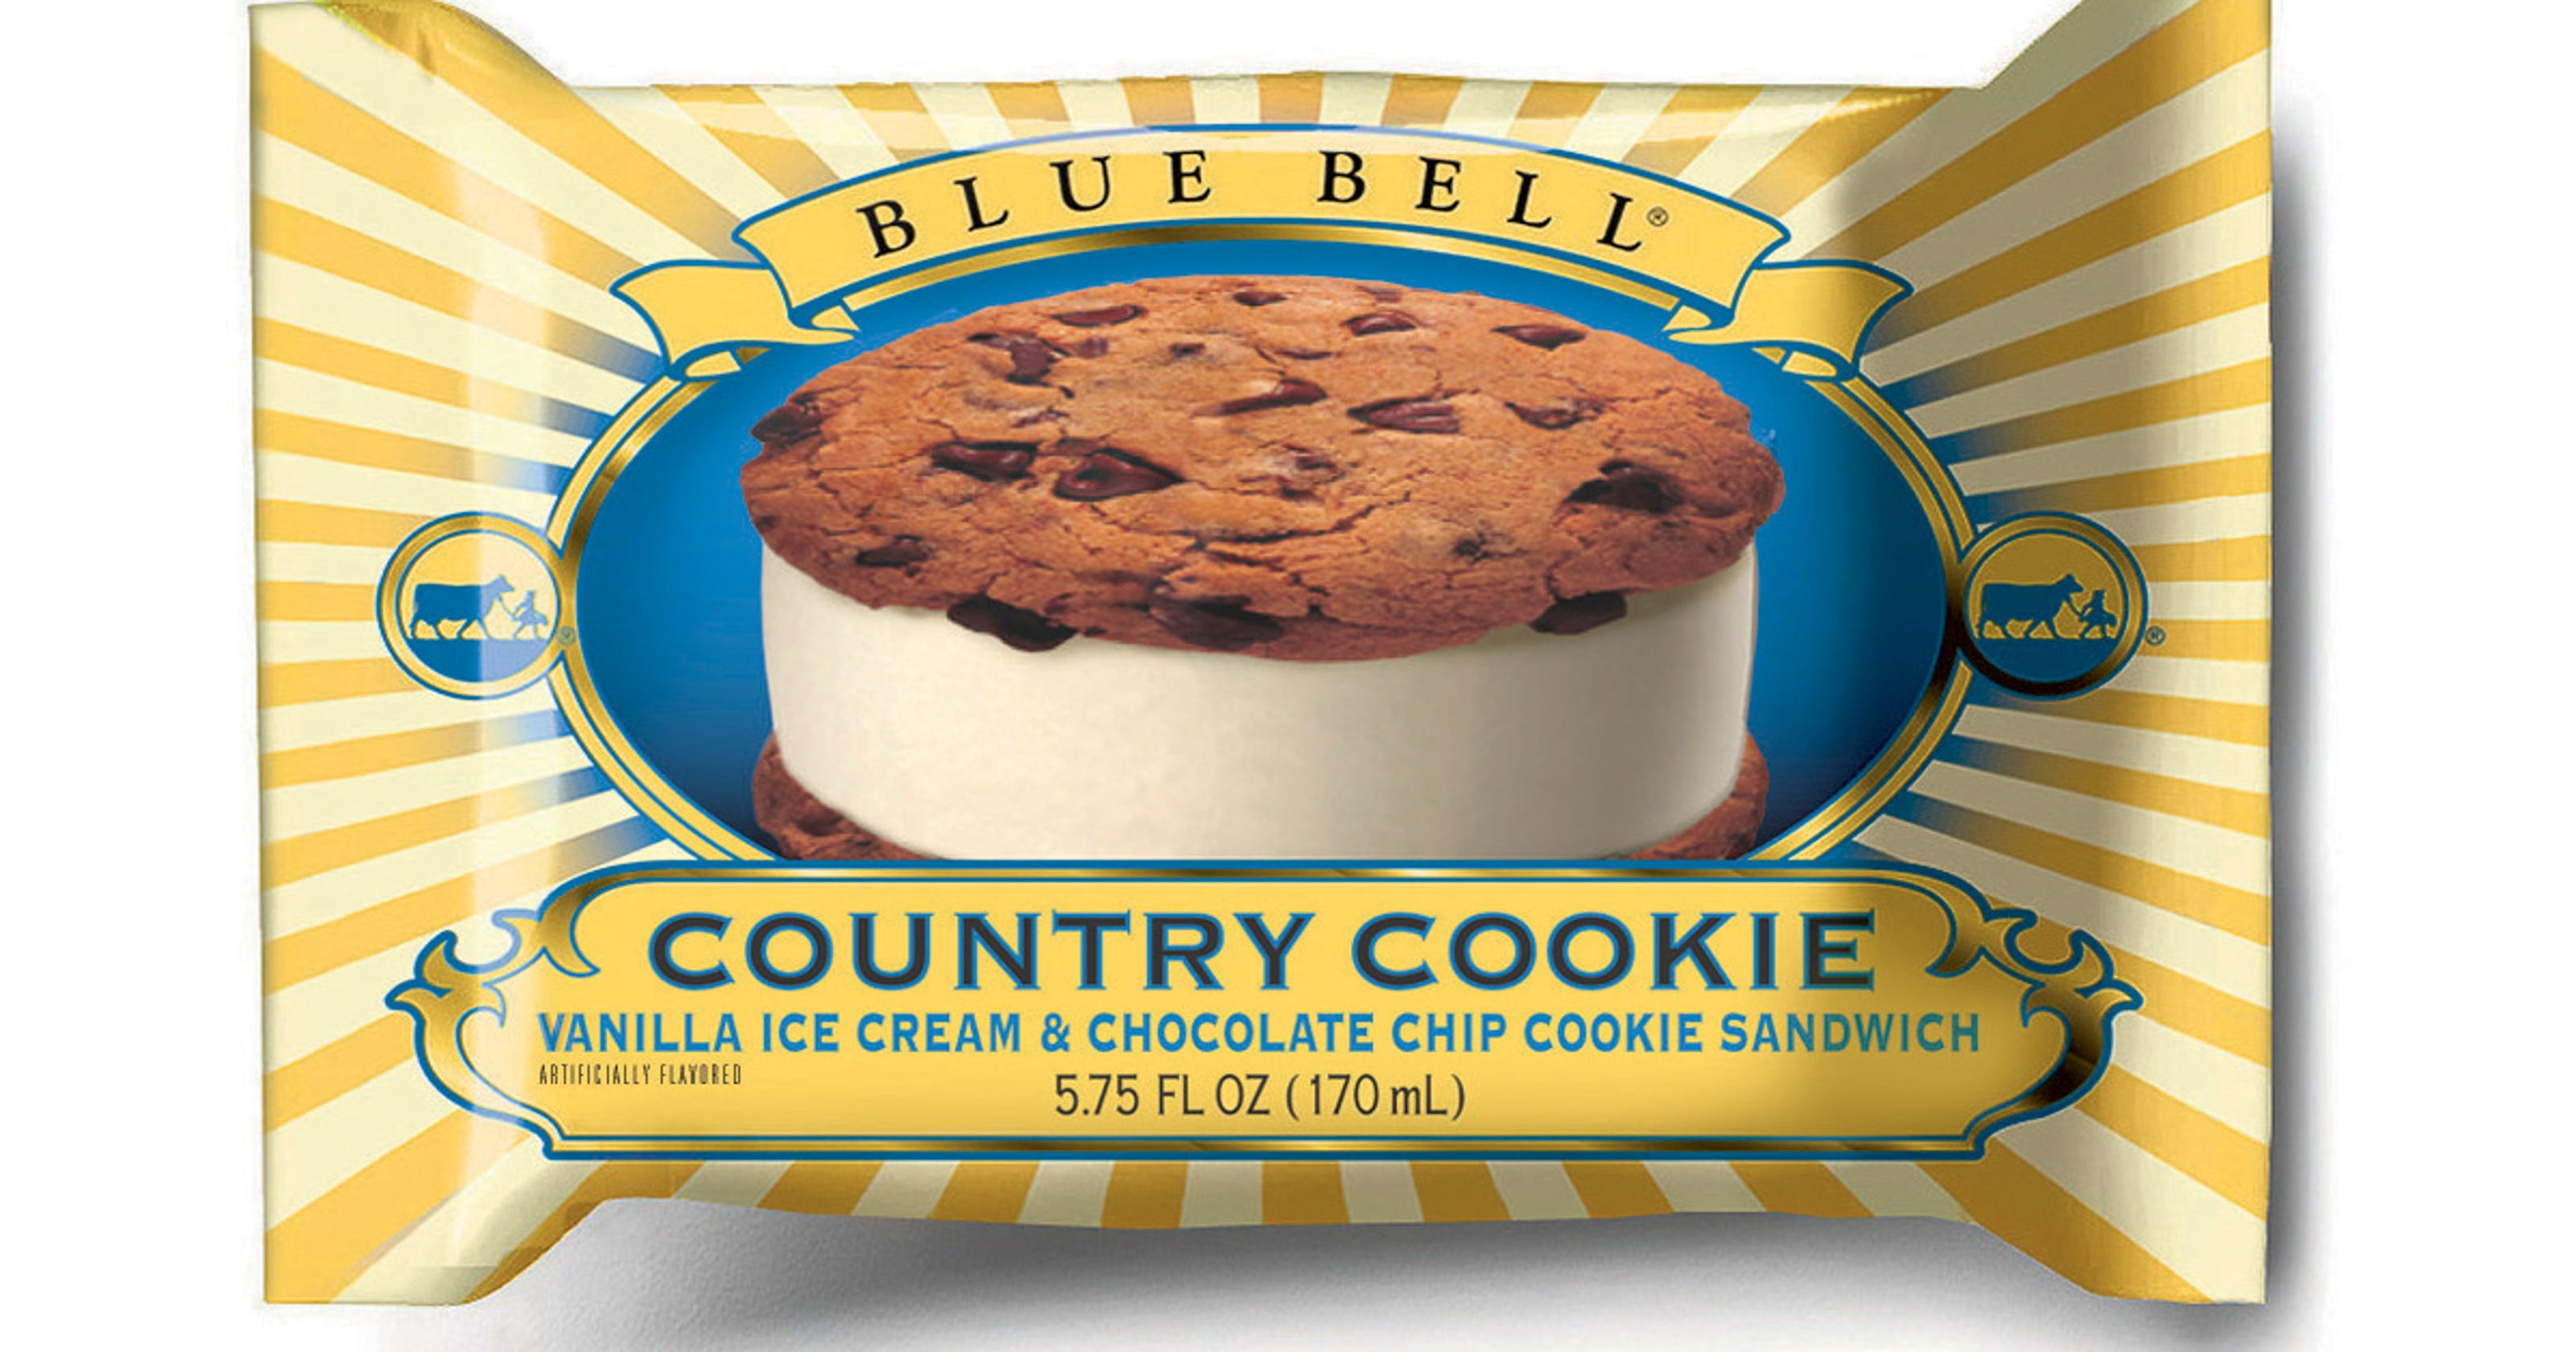 Listeria outbreak linked to single Blue Bell machine